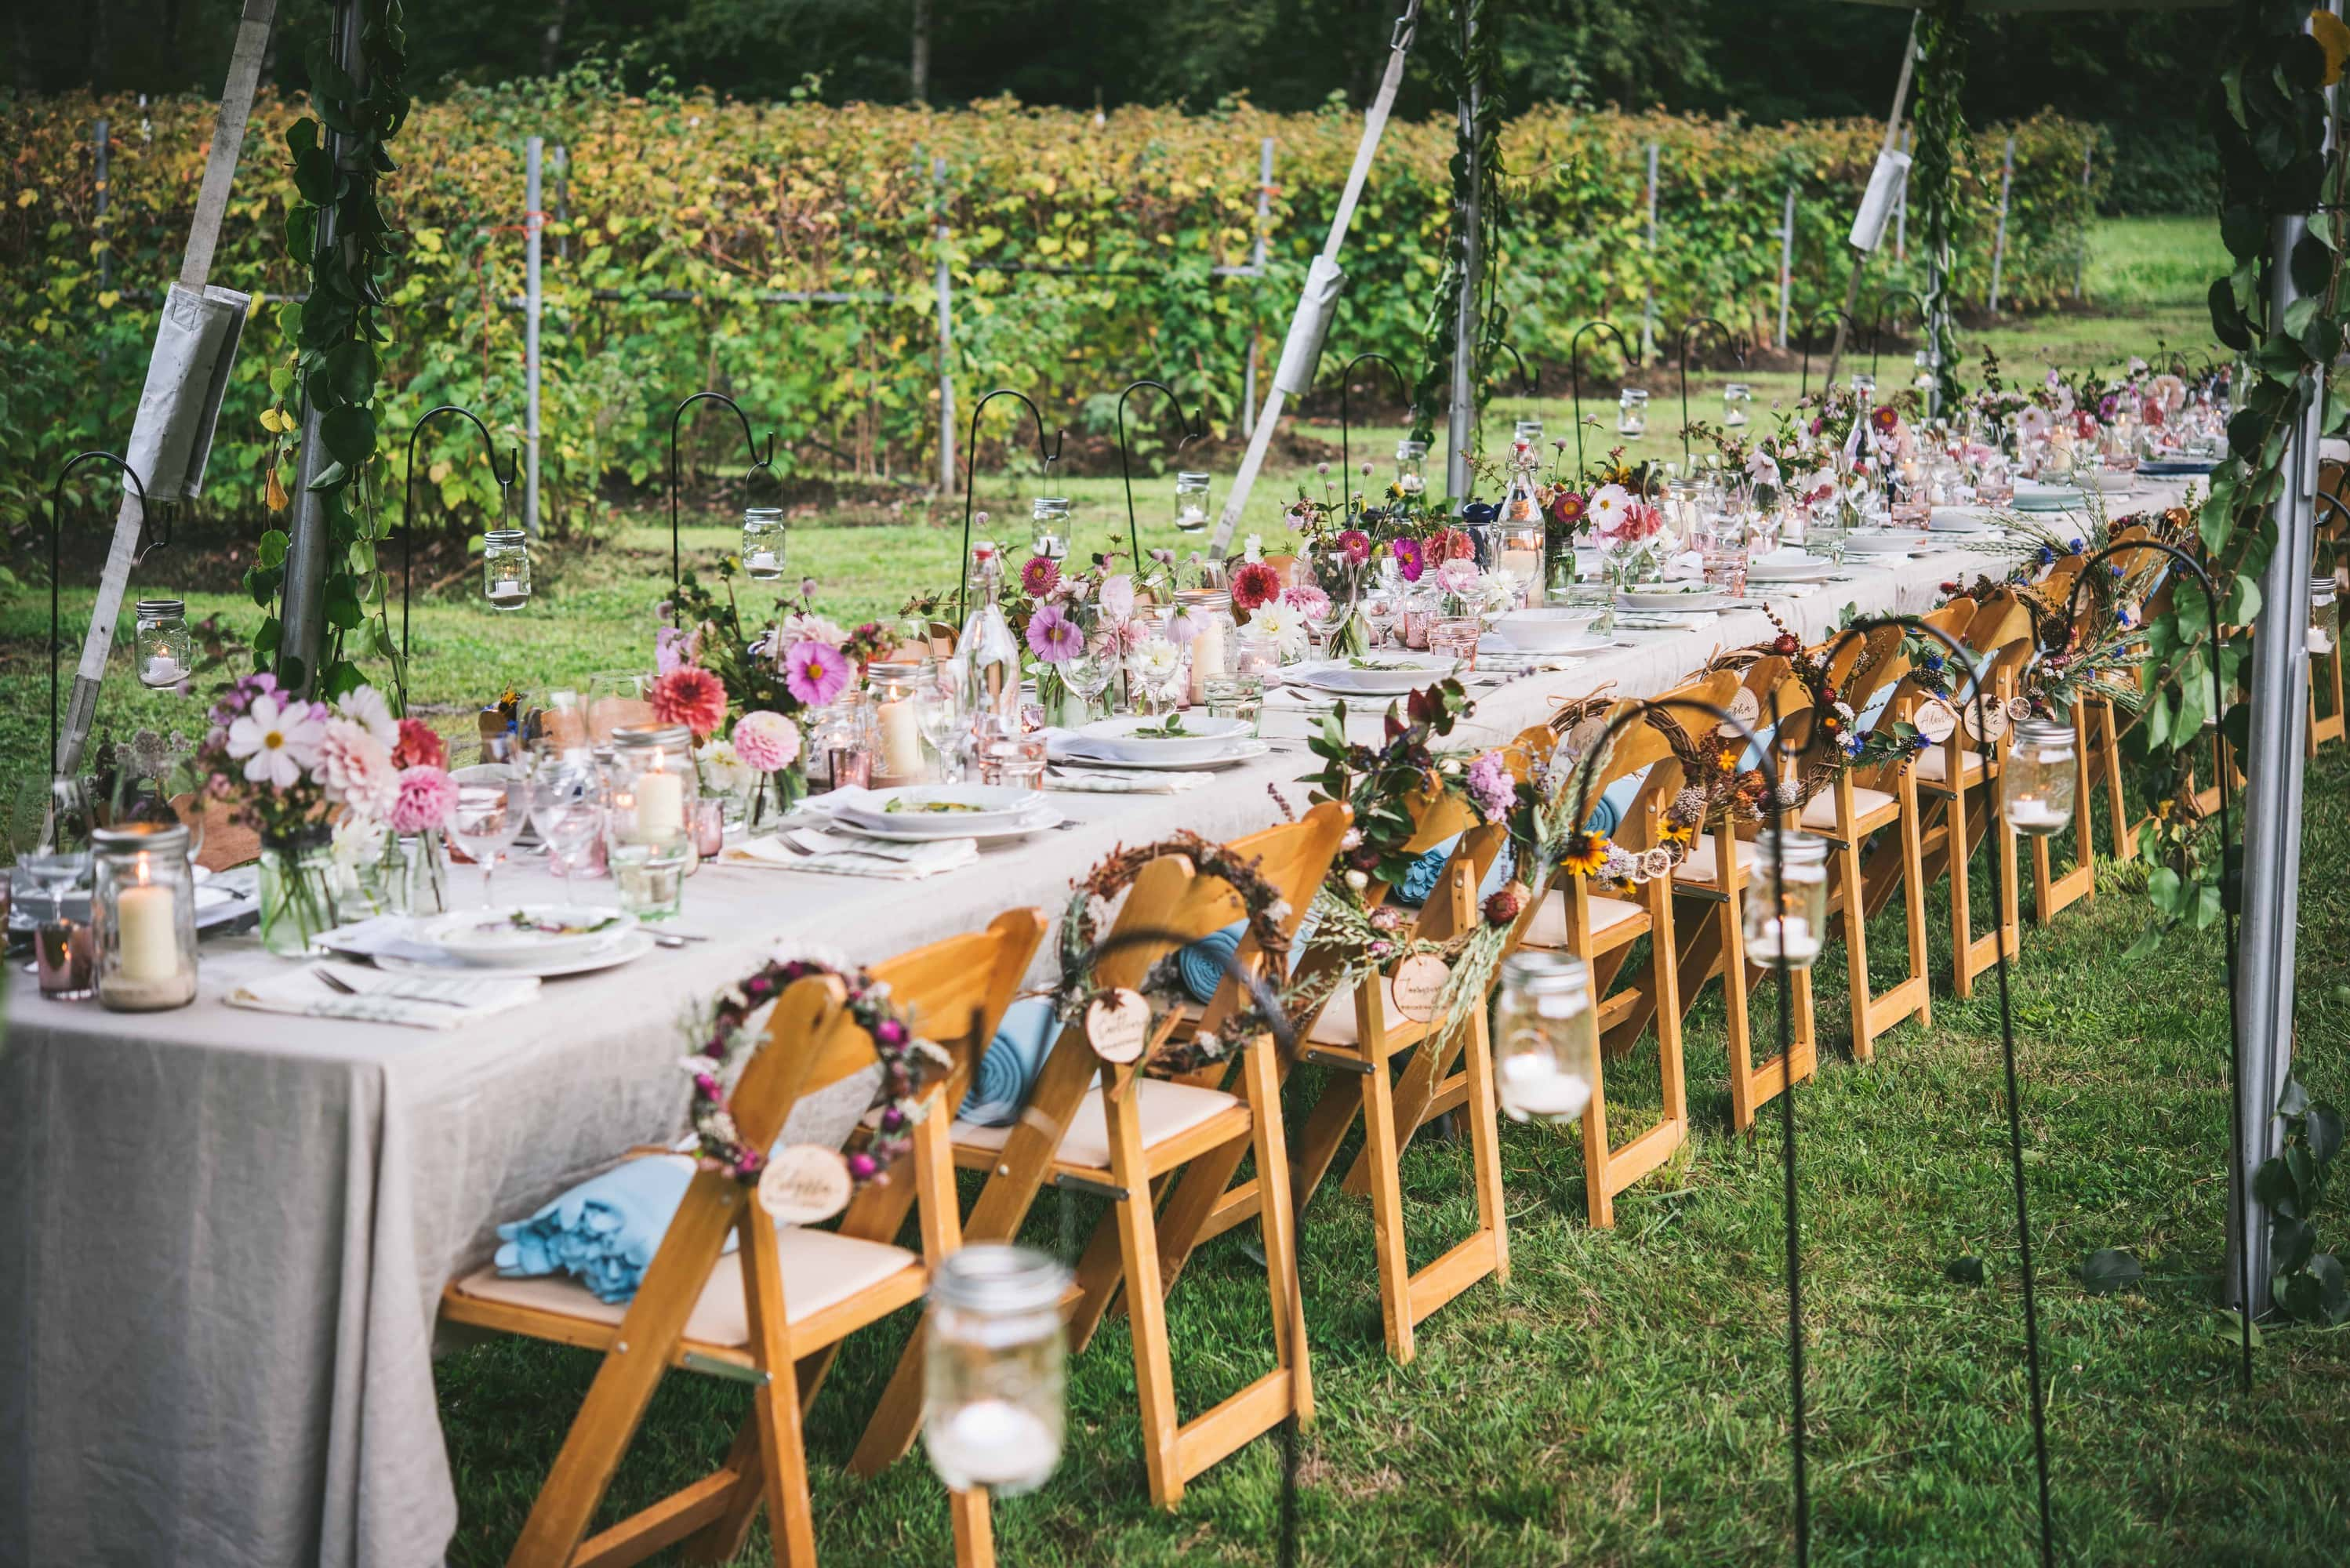 Landscape view of a long farm table set for dinner